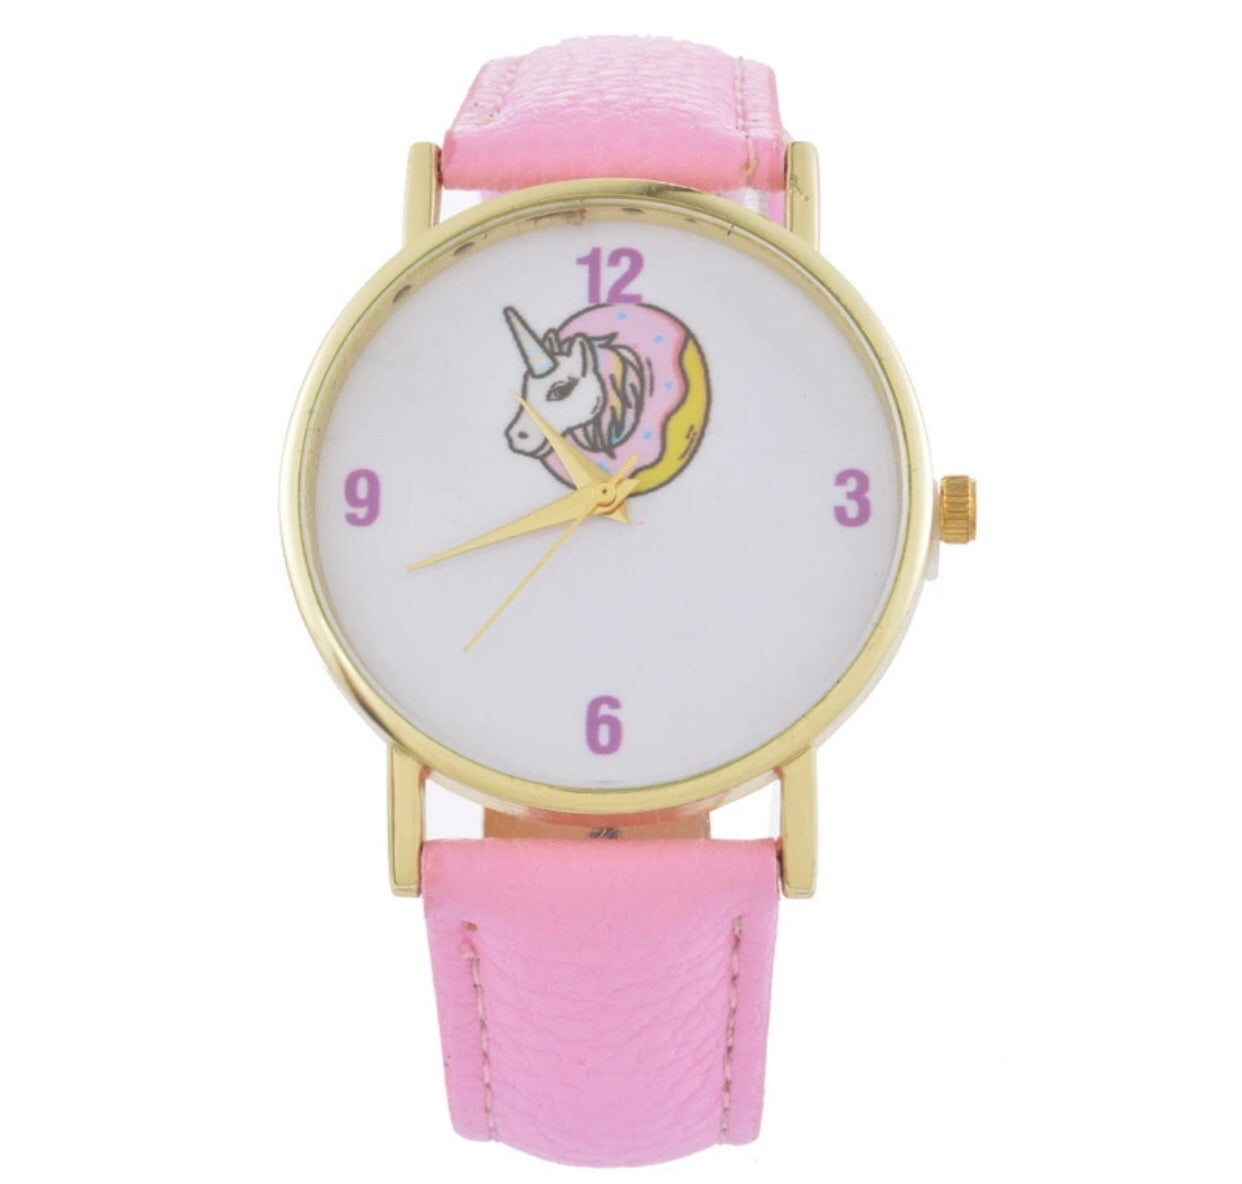 Unicorn donut 🍩🦄 pink watch